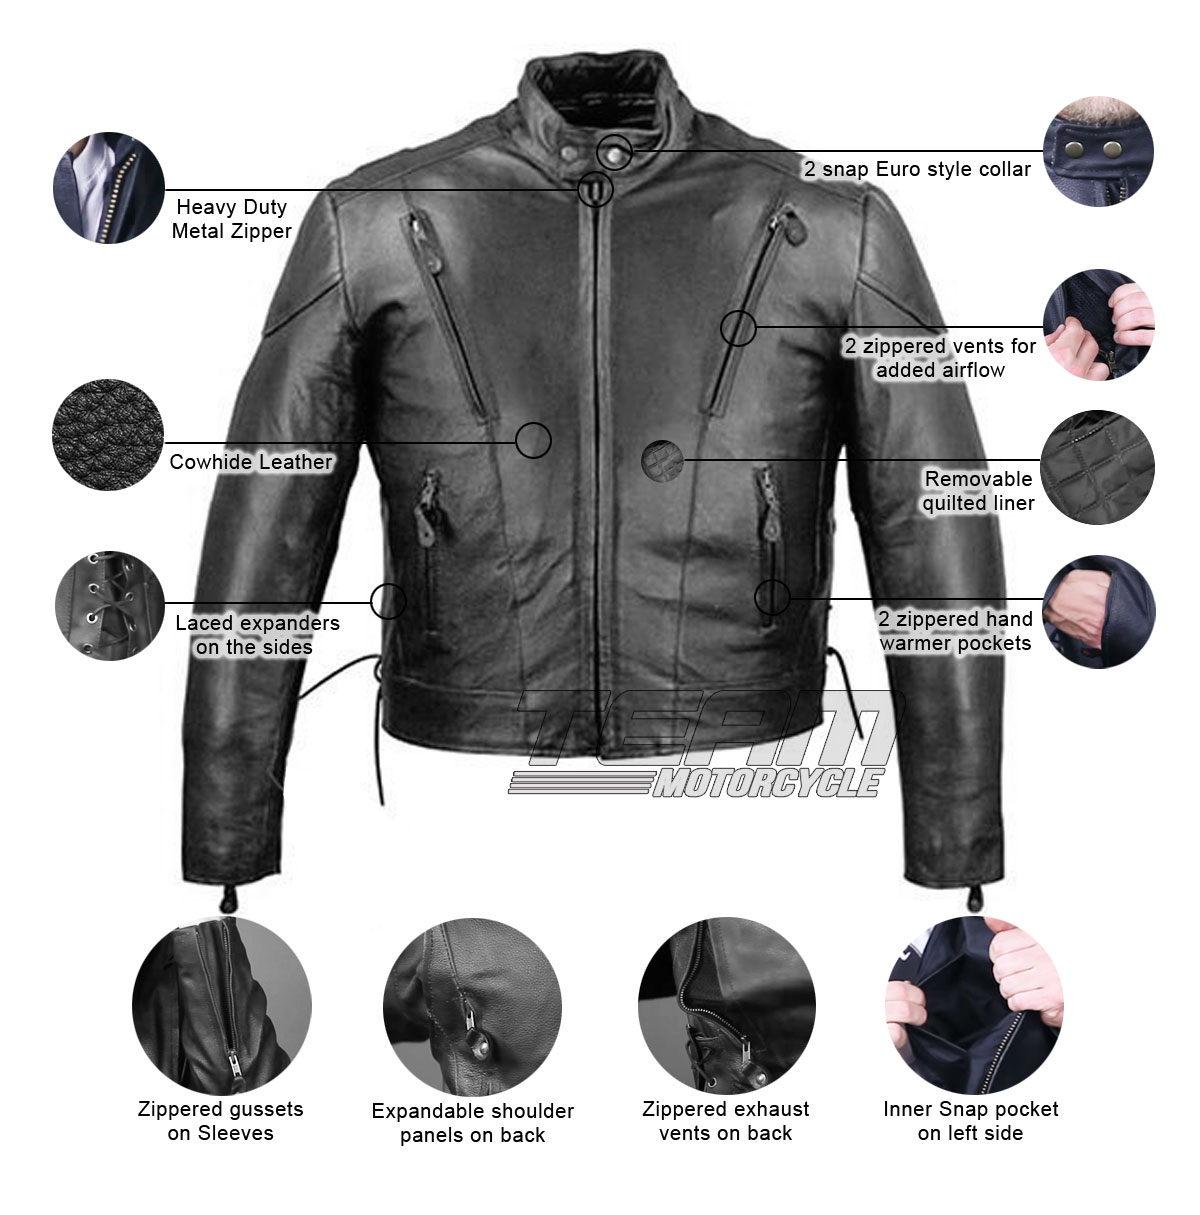 tall-black-cowhide-leather-motorcycle-jacket-infographics.jpg